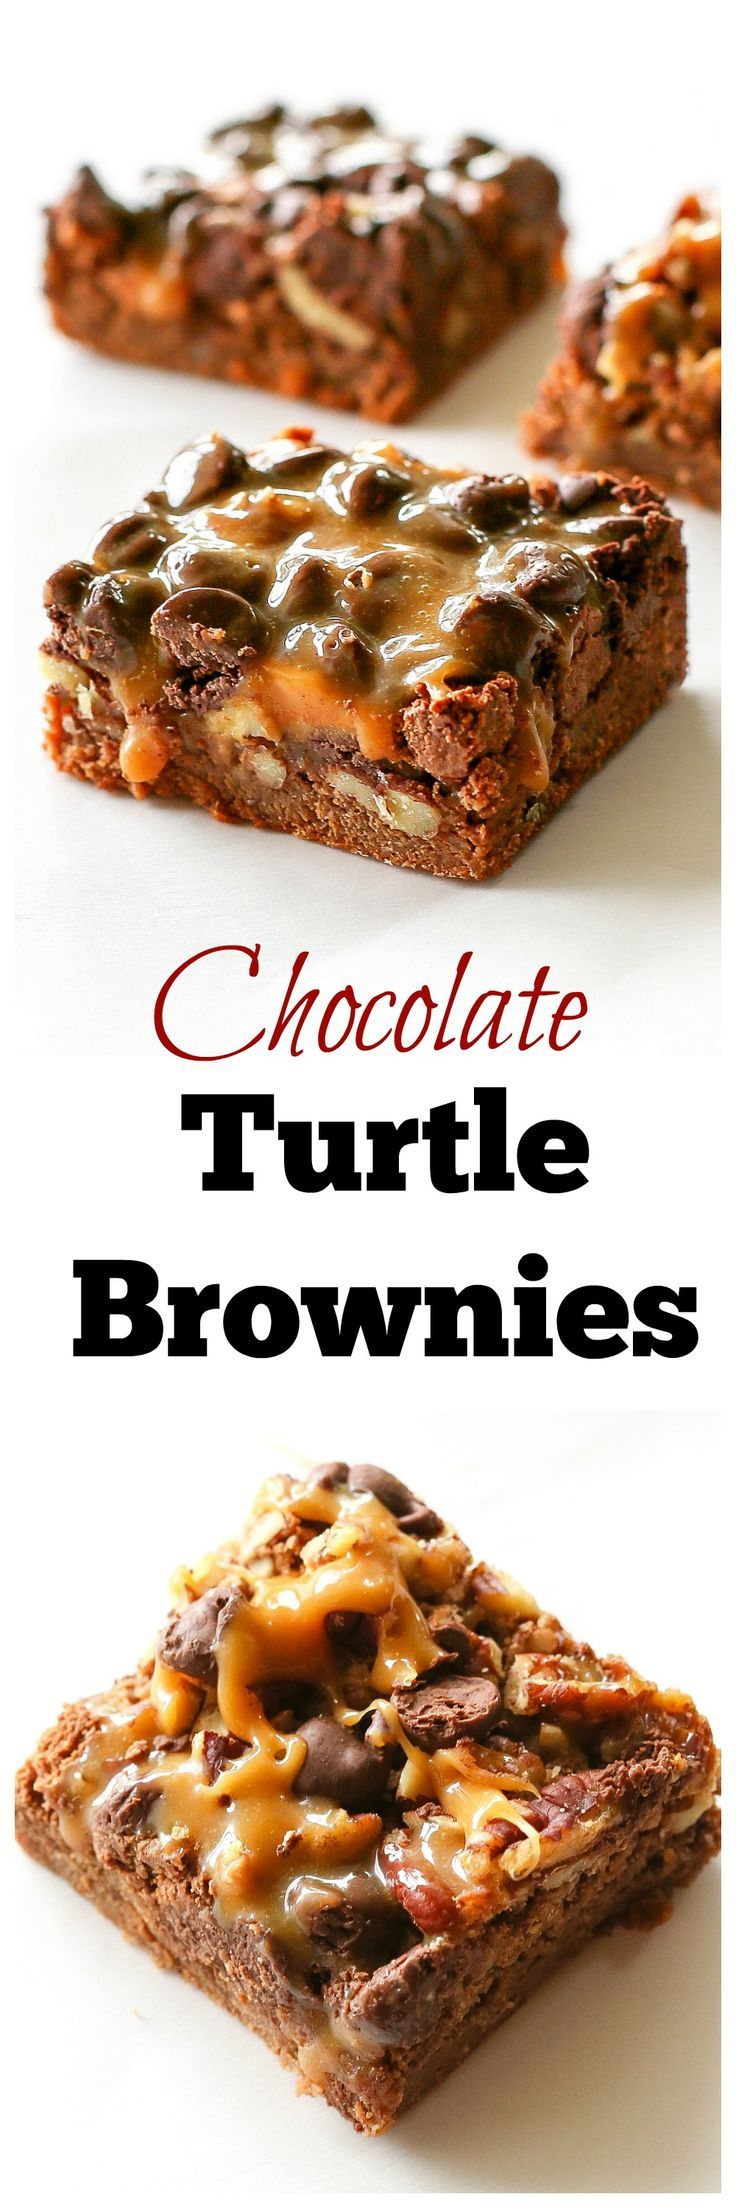 Chocolate Turtle Brownies - The Girl Who Ate Everything